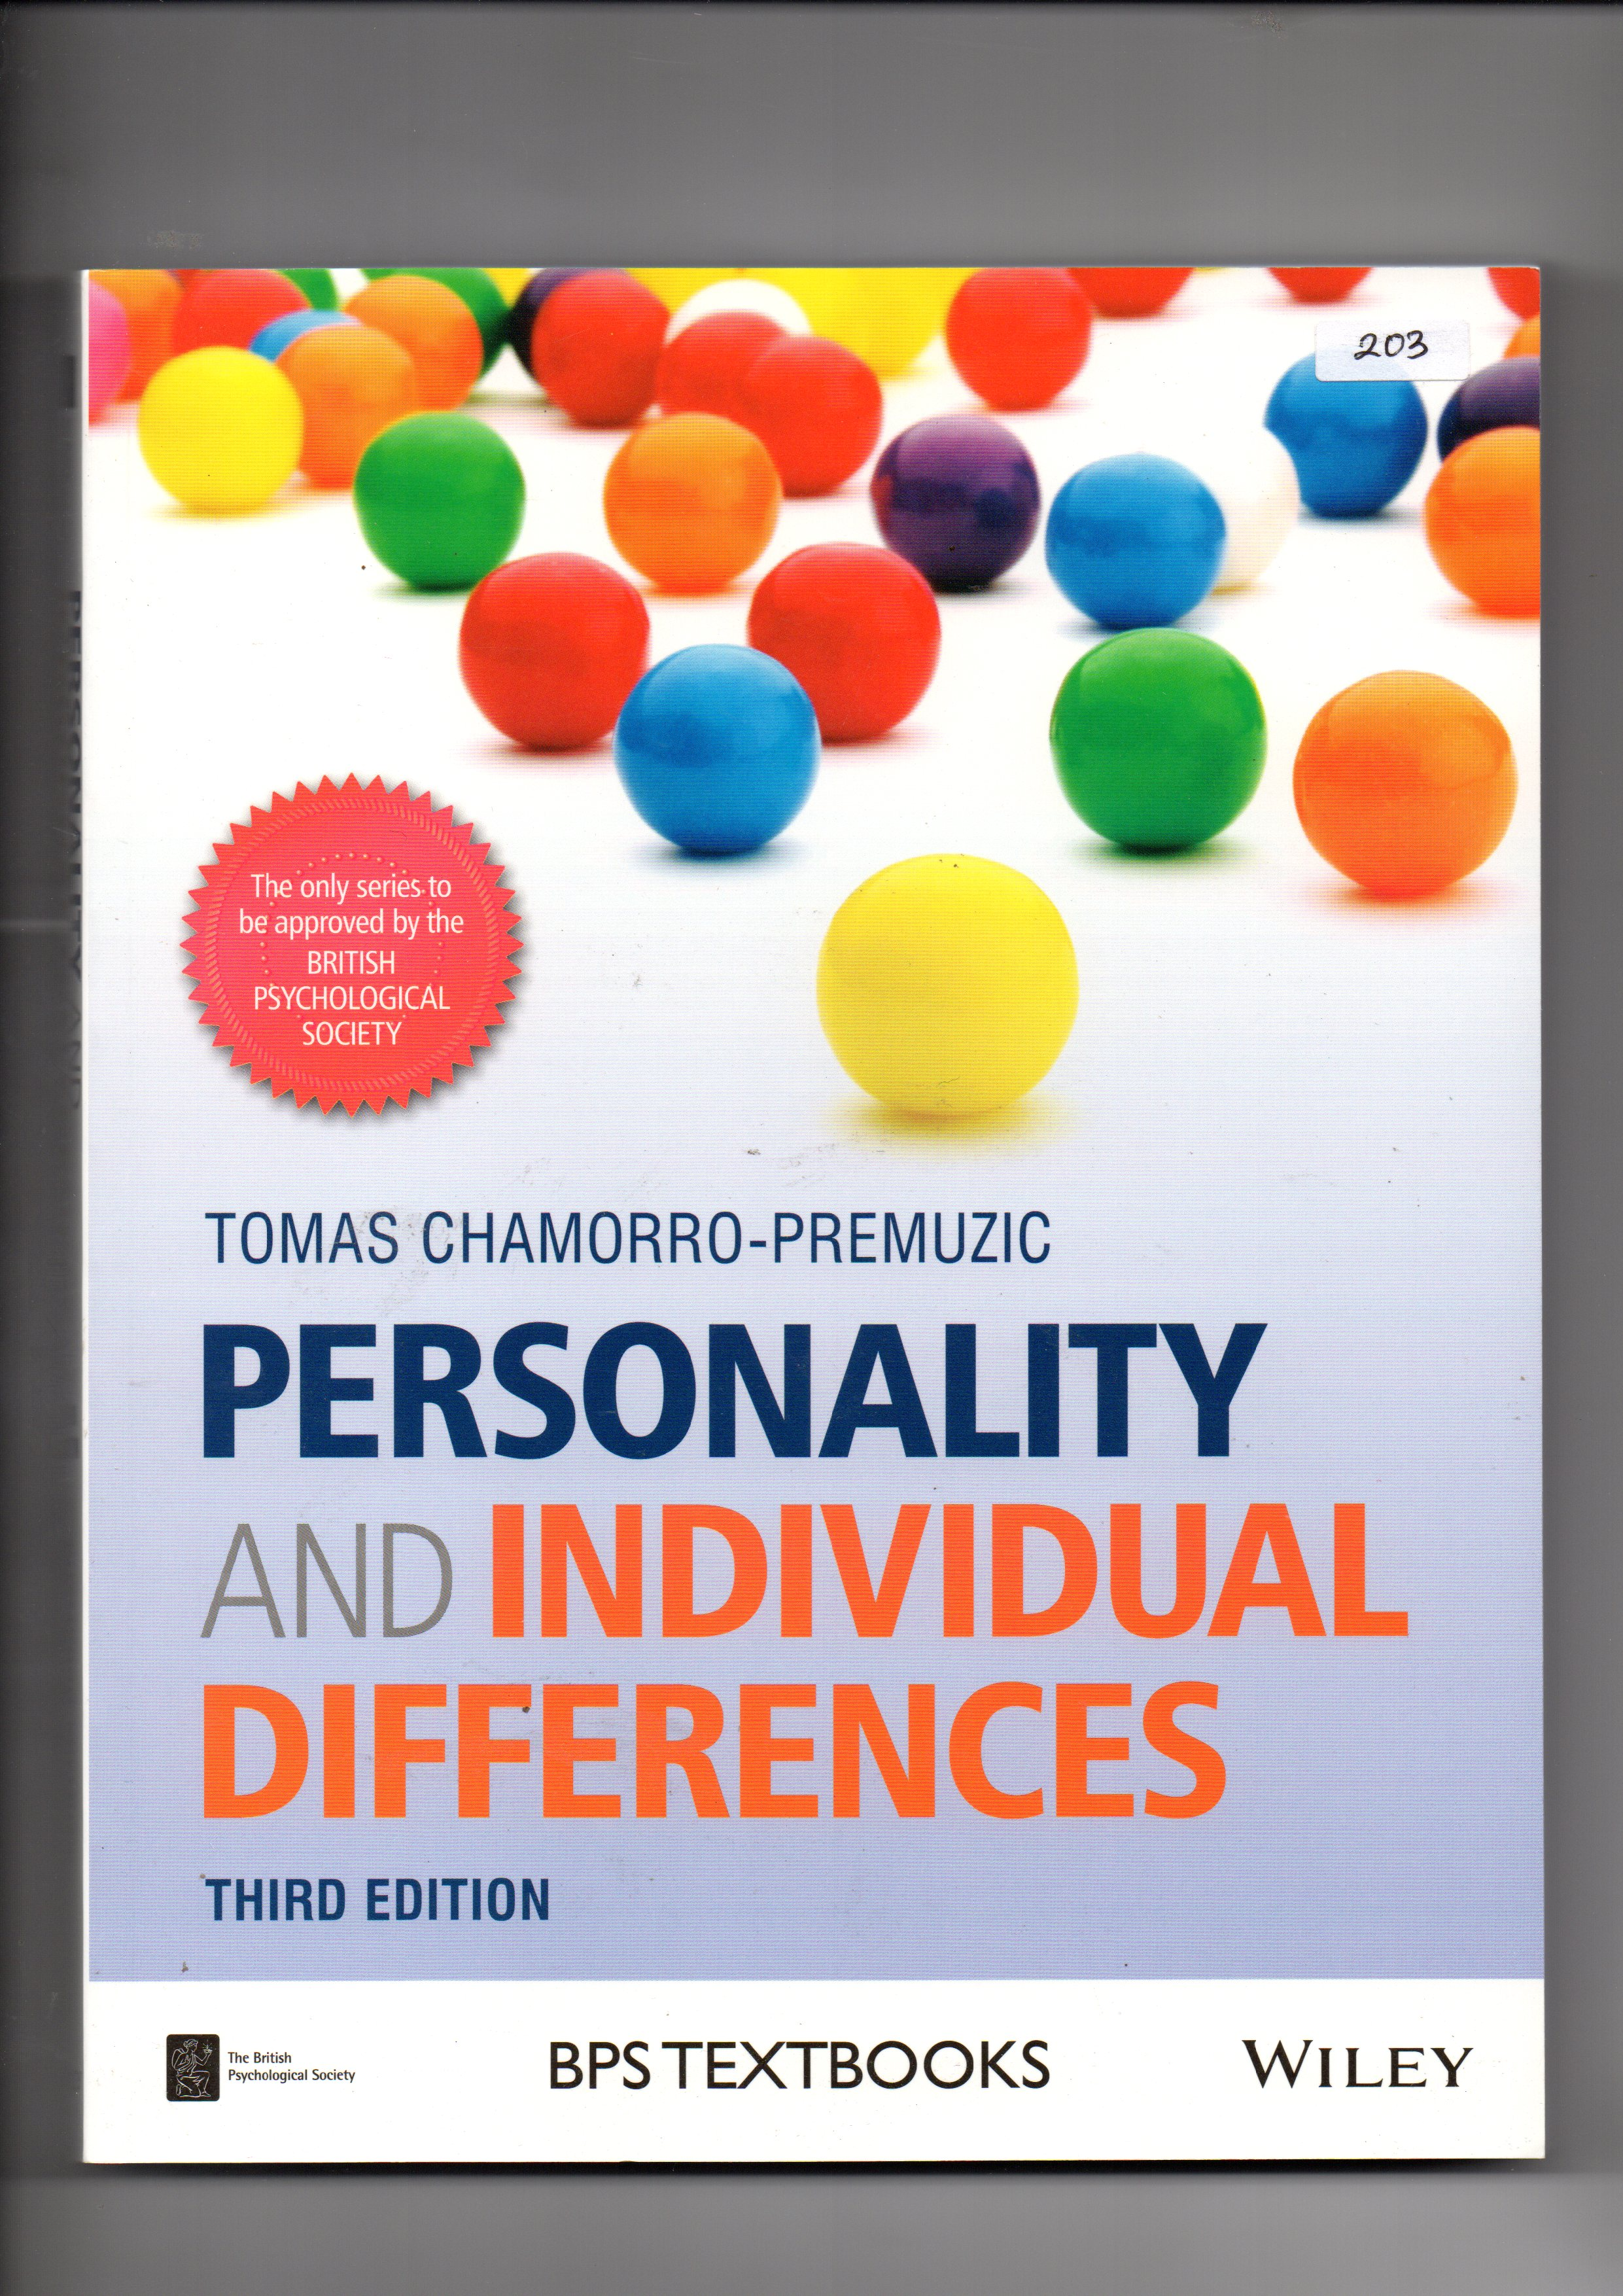 personality and individual differences the effect Personality and individual differences  1995  18  1  159-160 the relationships between impulsiveness, venturesomeness and empathy, and plutchik's coping styles were studied the following relationships were found: impulsiveness correlated negatively with mapping and positively with suppression (for men), positively with suppression and seeking succorance, and negatively with substitution (for women.